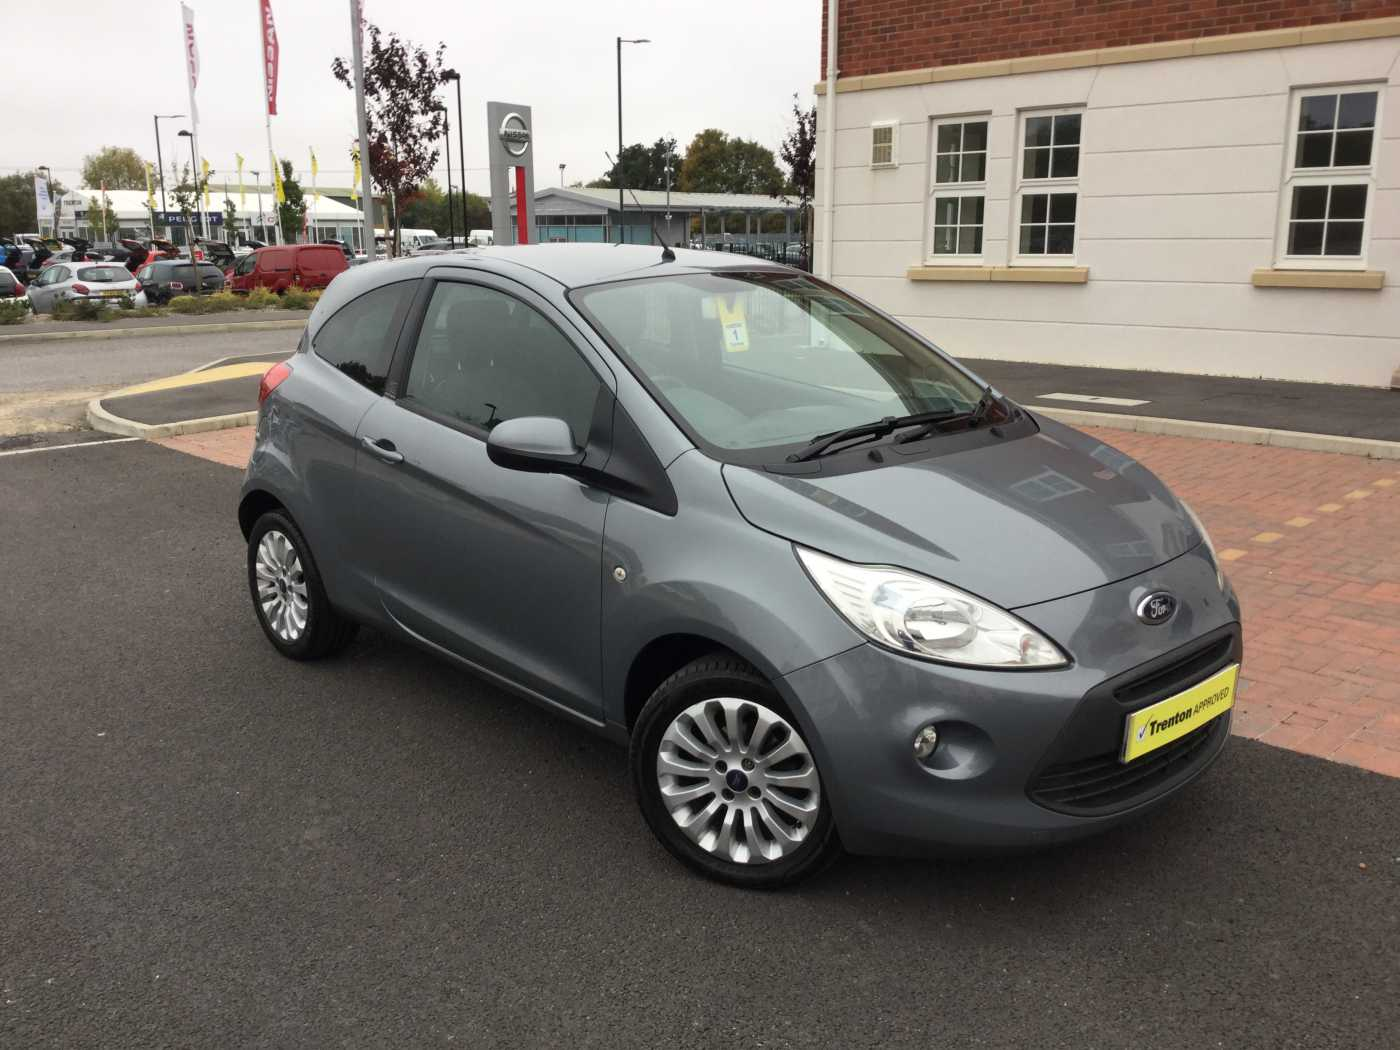 Ford Ka 1.2 (S/S) Zetec 3-Door Hatchback